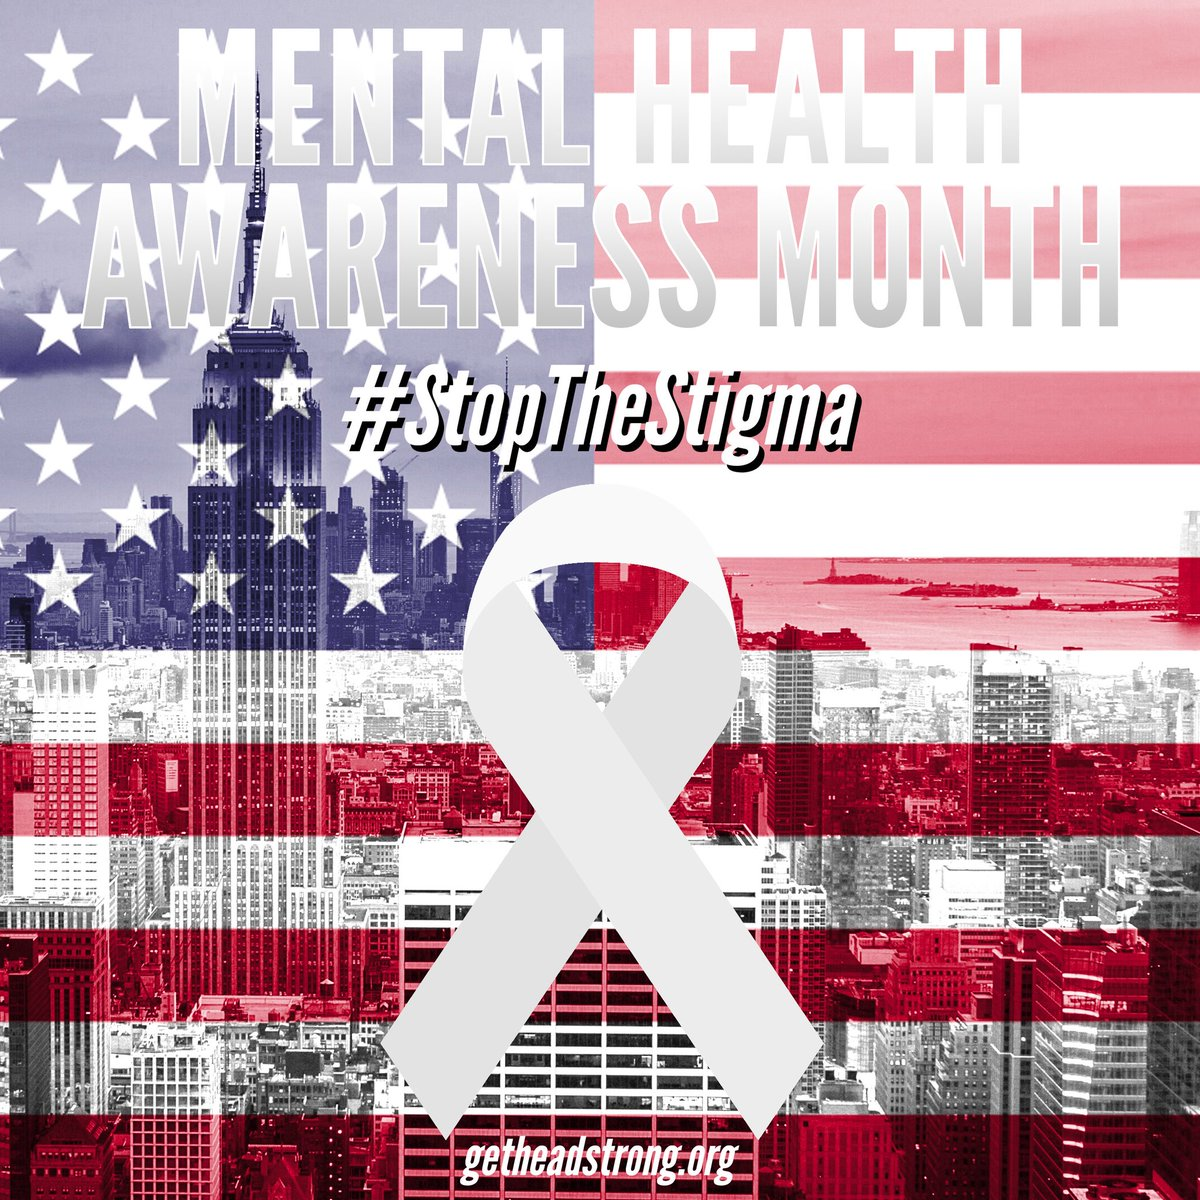 Today is the first day of national #MentalHealthAwareness month. So we ask that you please share this message, in order to help us #StopTheStigma and continue to raise awareness for the mental health needs of the veterans community  ▪️ #Veterans #MentalHealth #GetHeadstrong